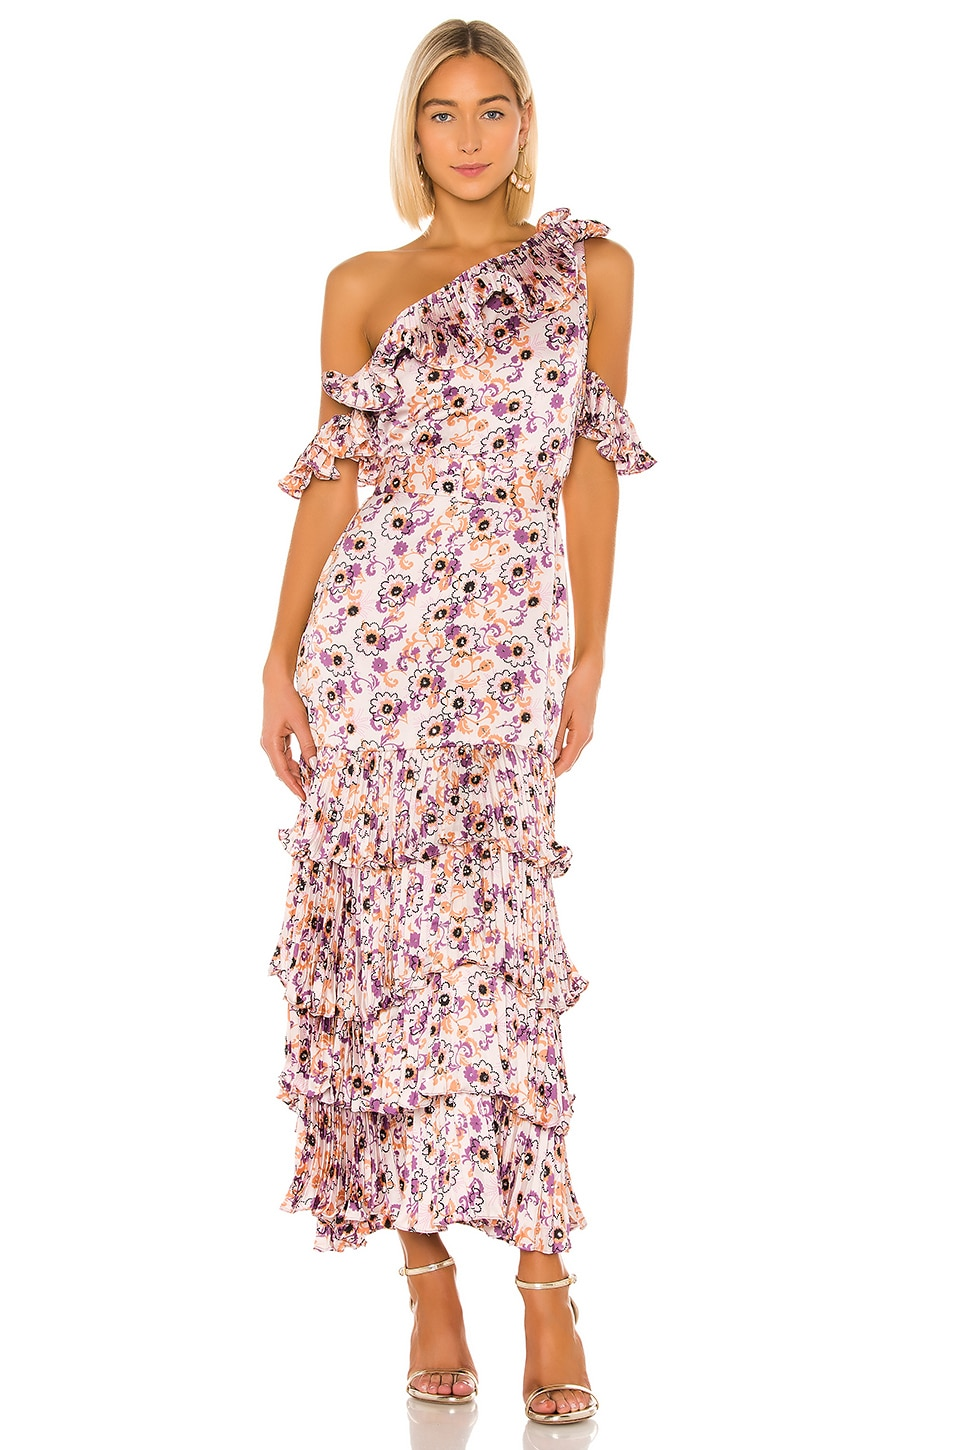 Alexis Amonda Dress in Lilac Beaded Floral